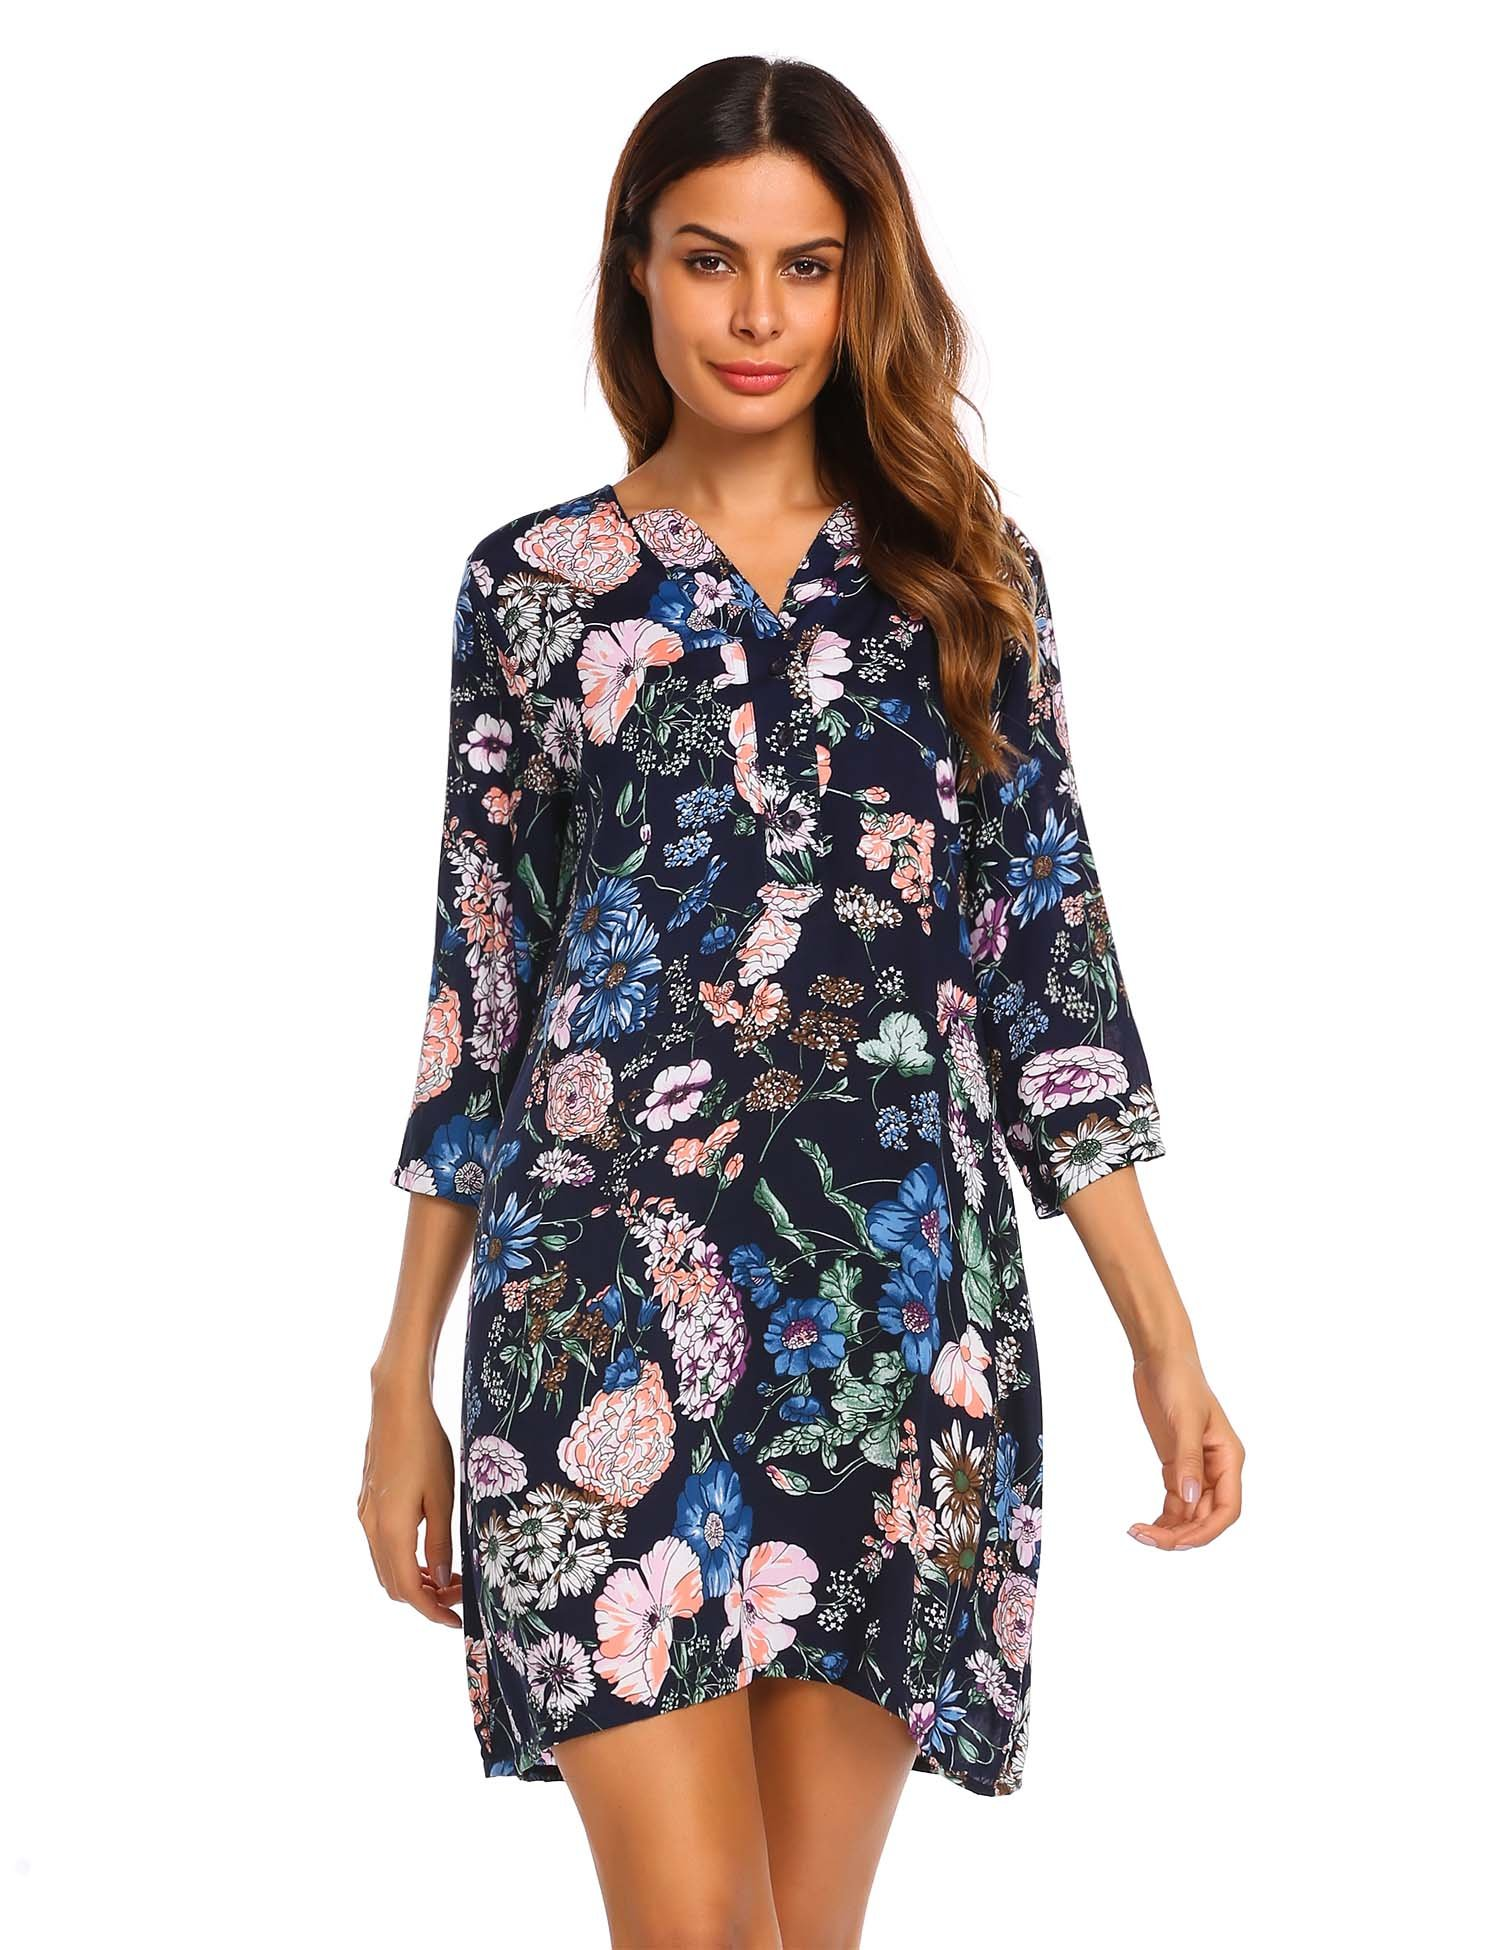 ACEVOG Women's Ethnic Styles Printed Floral Loose Summer Beach Dress (Navy Blue,S) by ACEVOG